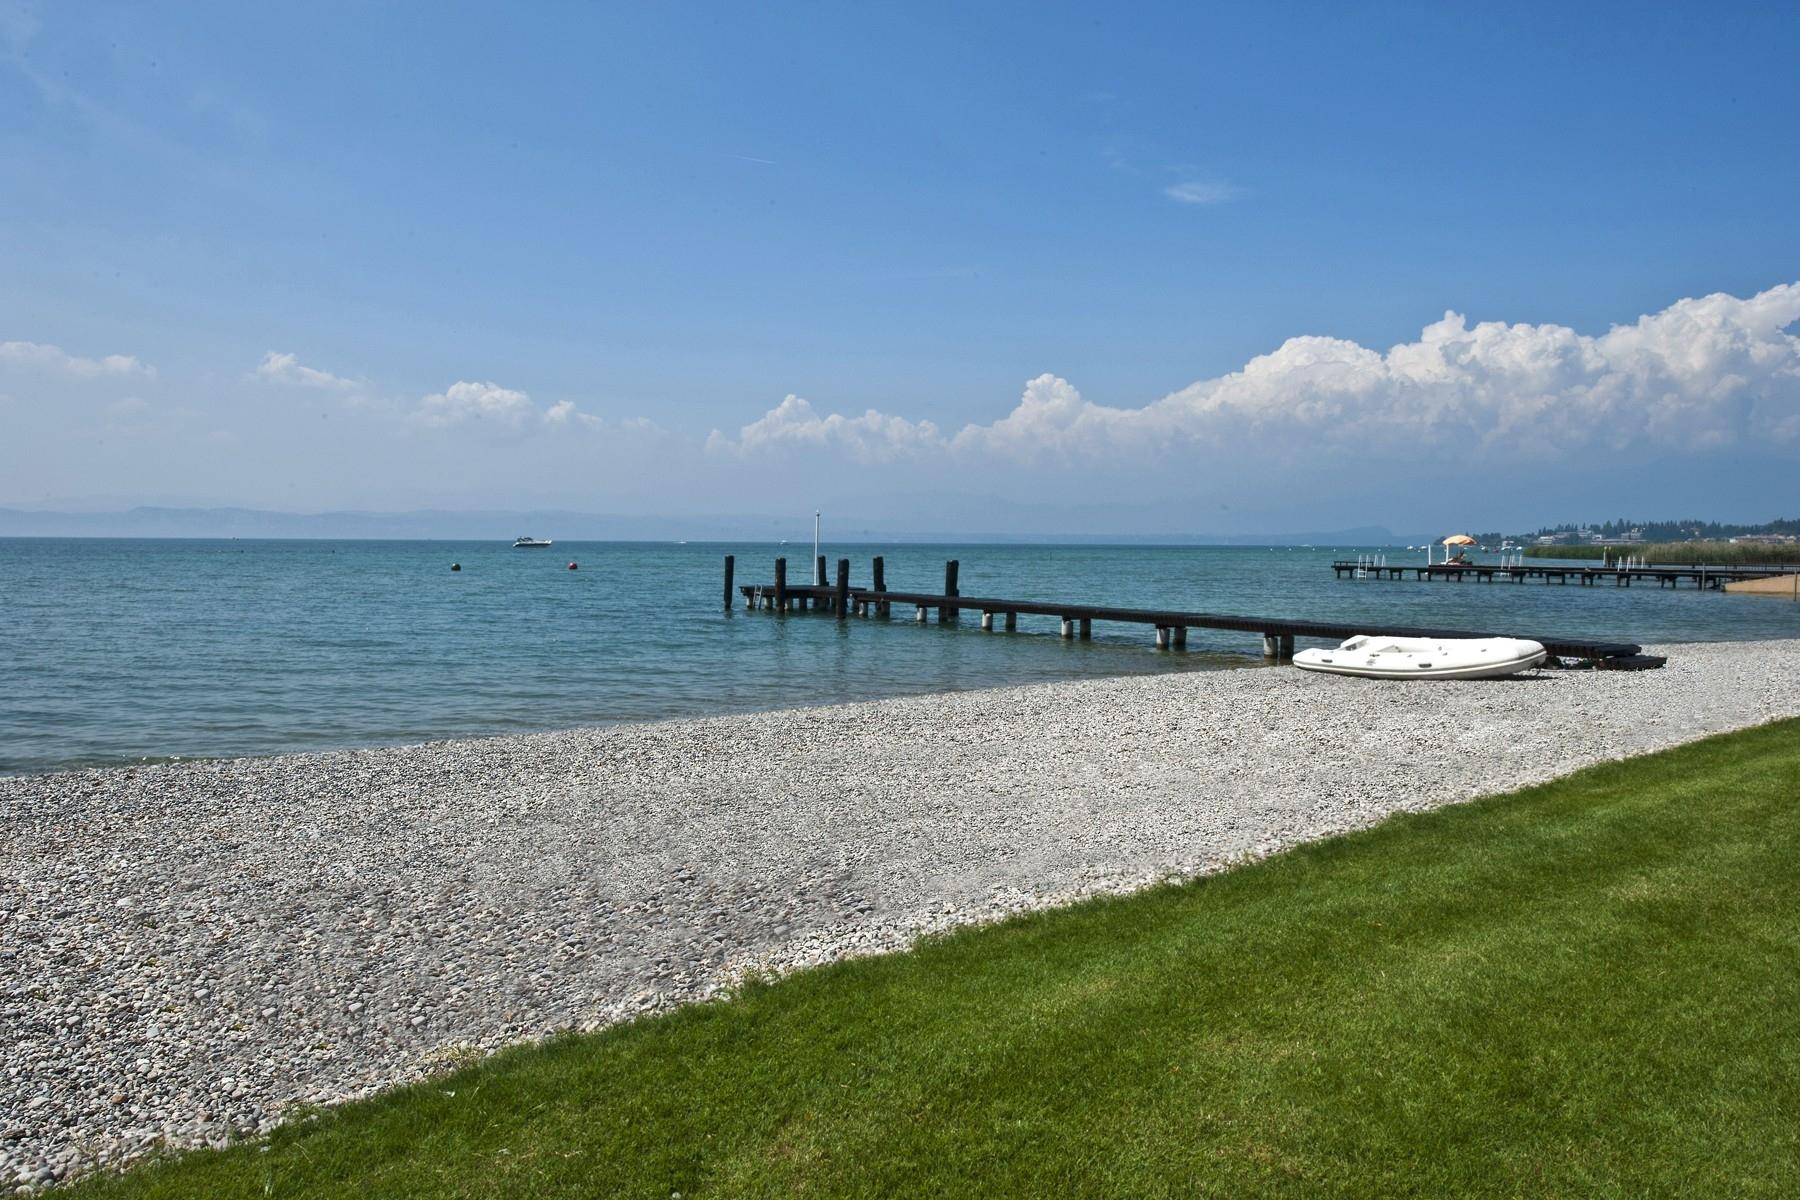 One of a kind Pieds dans l'eau villa with beach and dock in Sirmione - 3